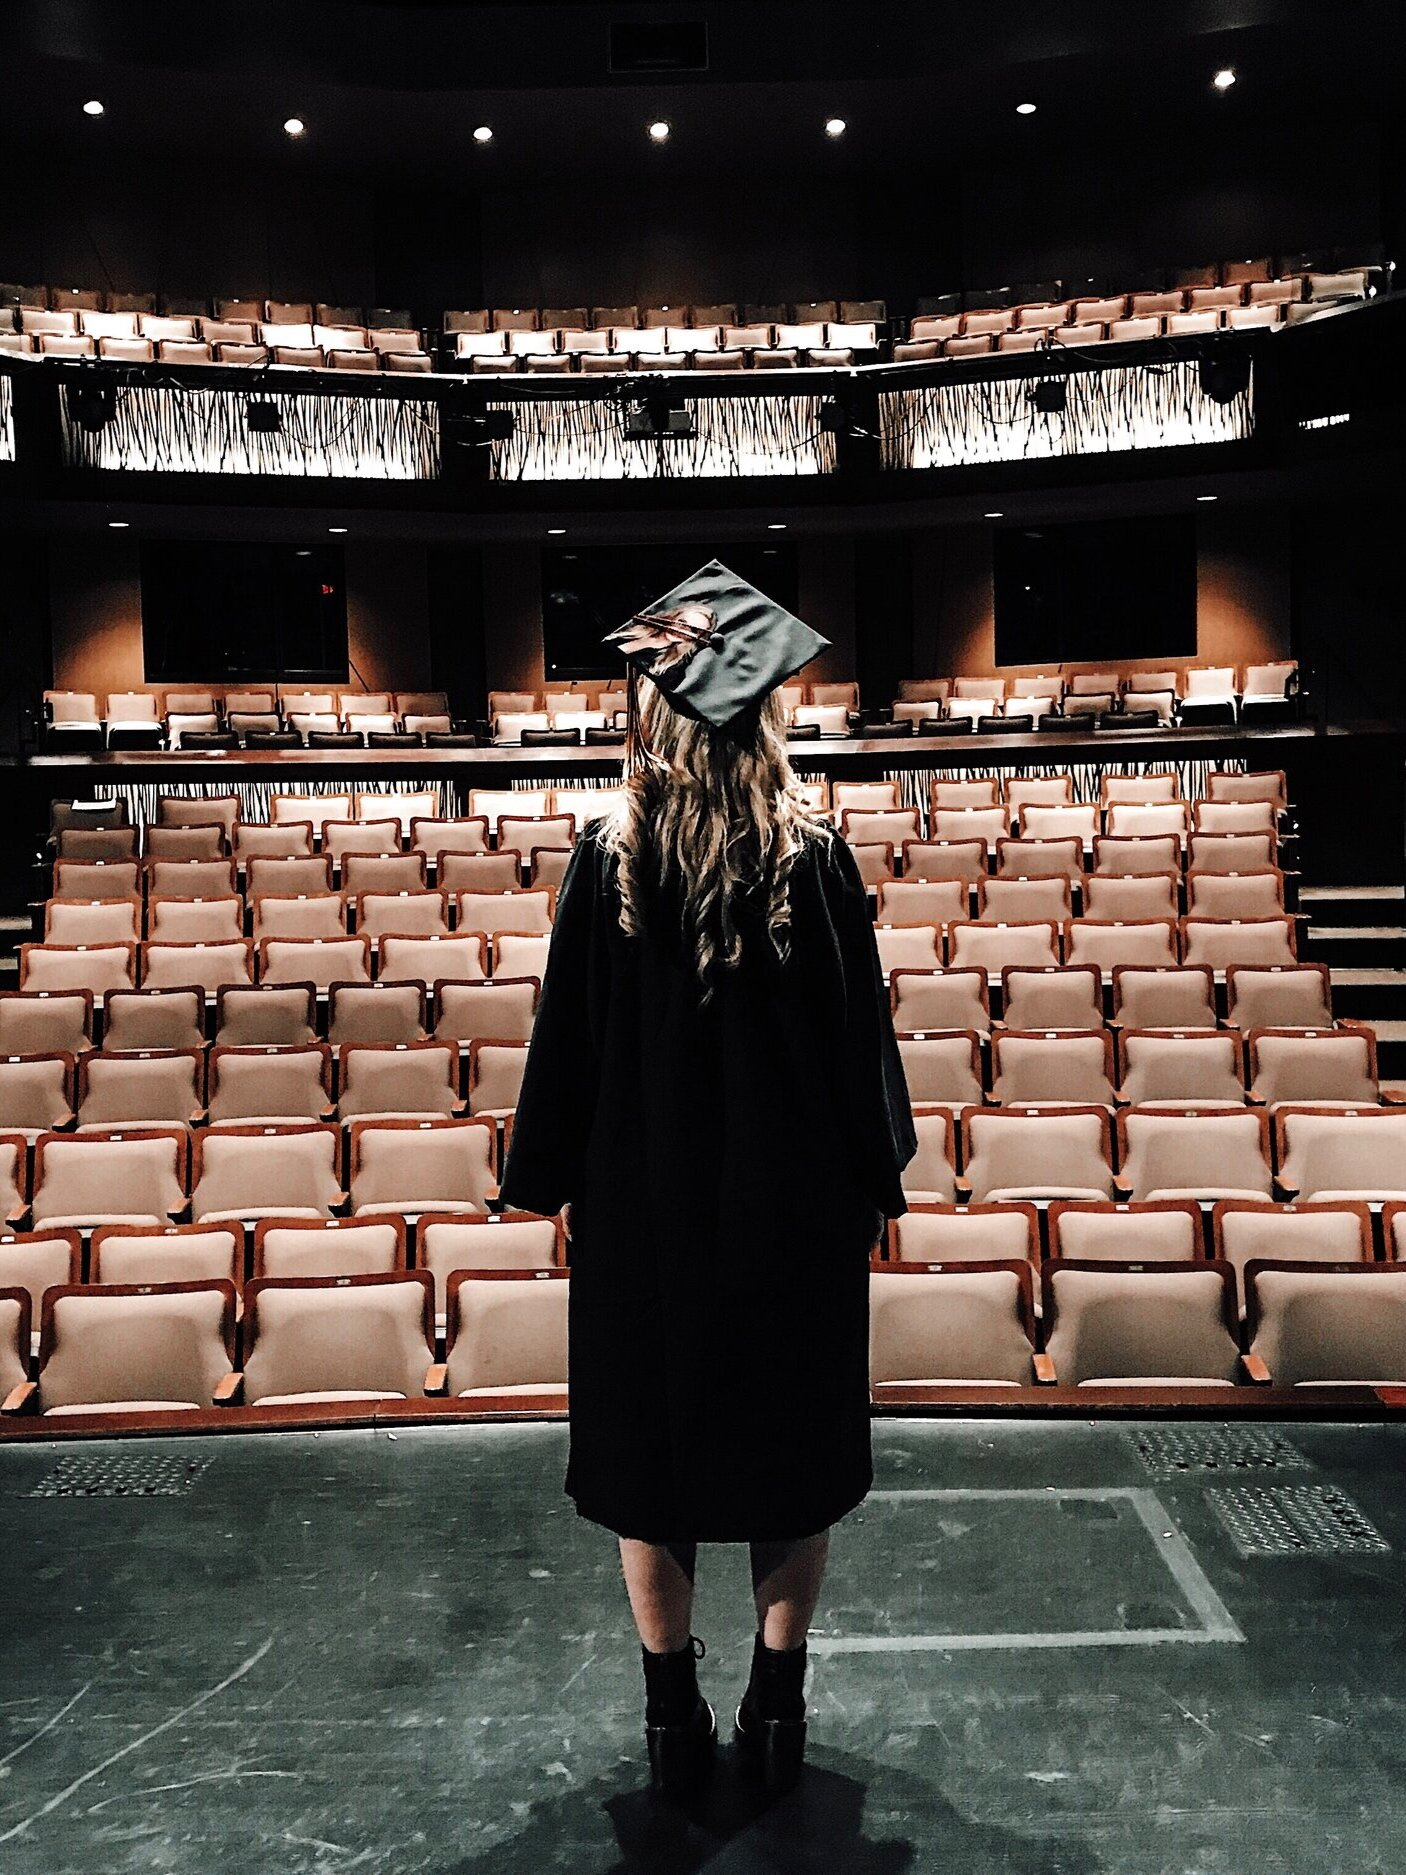 ACTOR AESTHETIC ONLINE COURSE - The Ultimate Guide To Preparing For Musical Theatre College Auditions (IN 5 STEPS!)